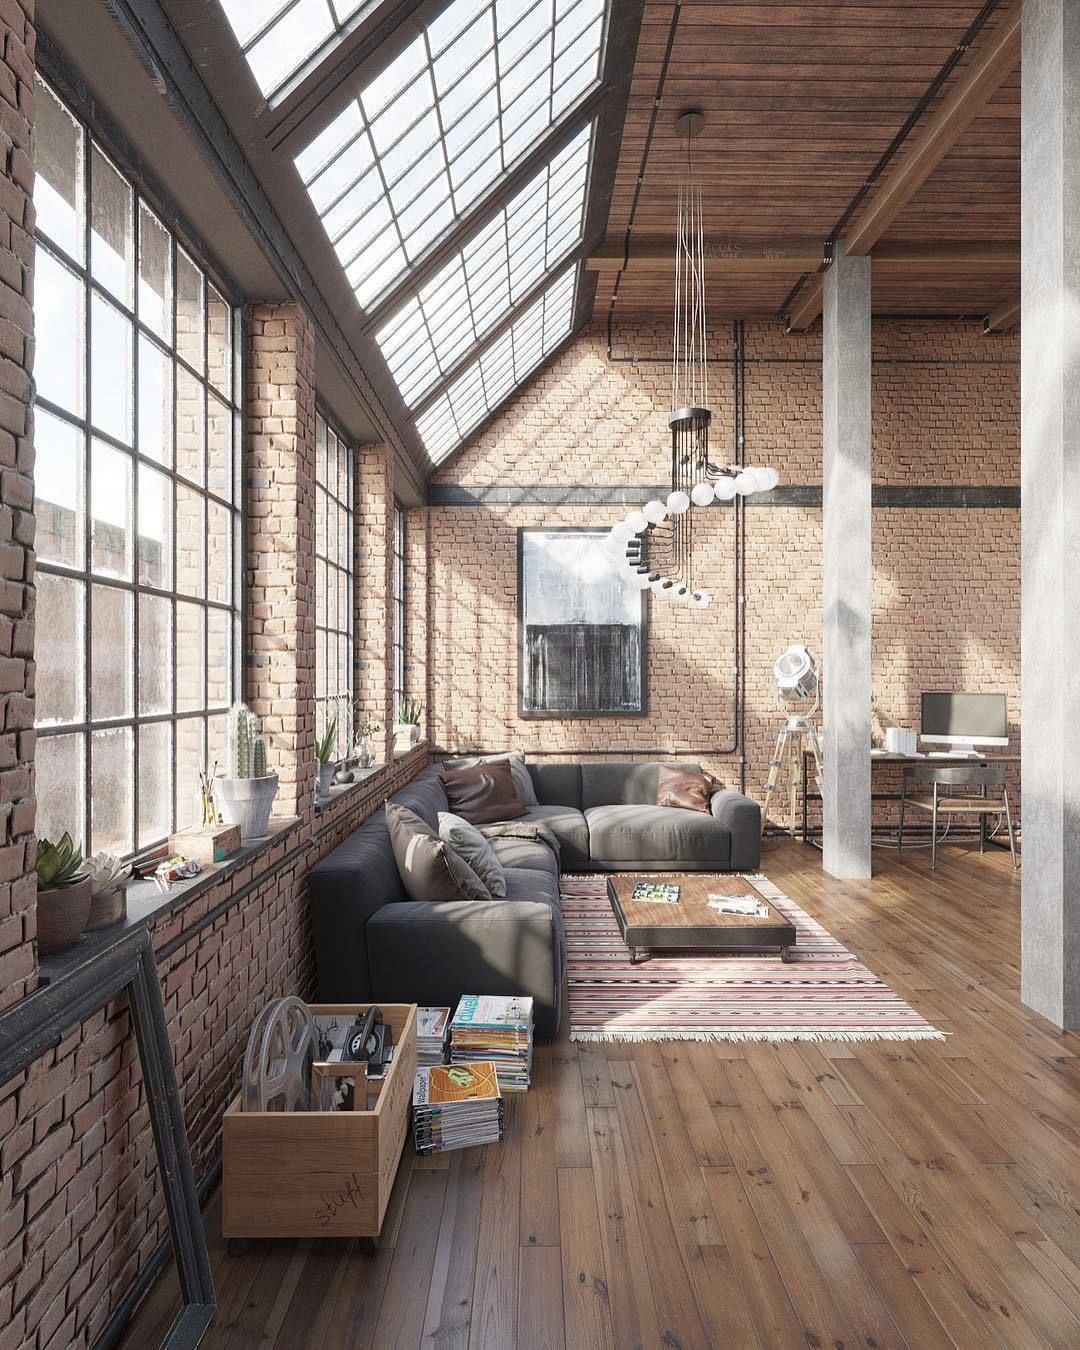 interior design architecture homeadore no instagram industrial loft visualization by. Black Bedroom Furniture Sets. Home Design Ideas